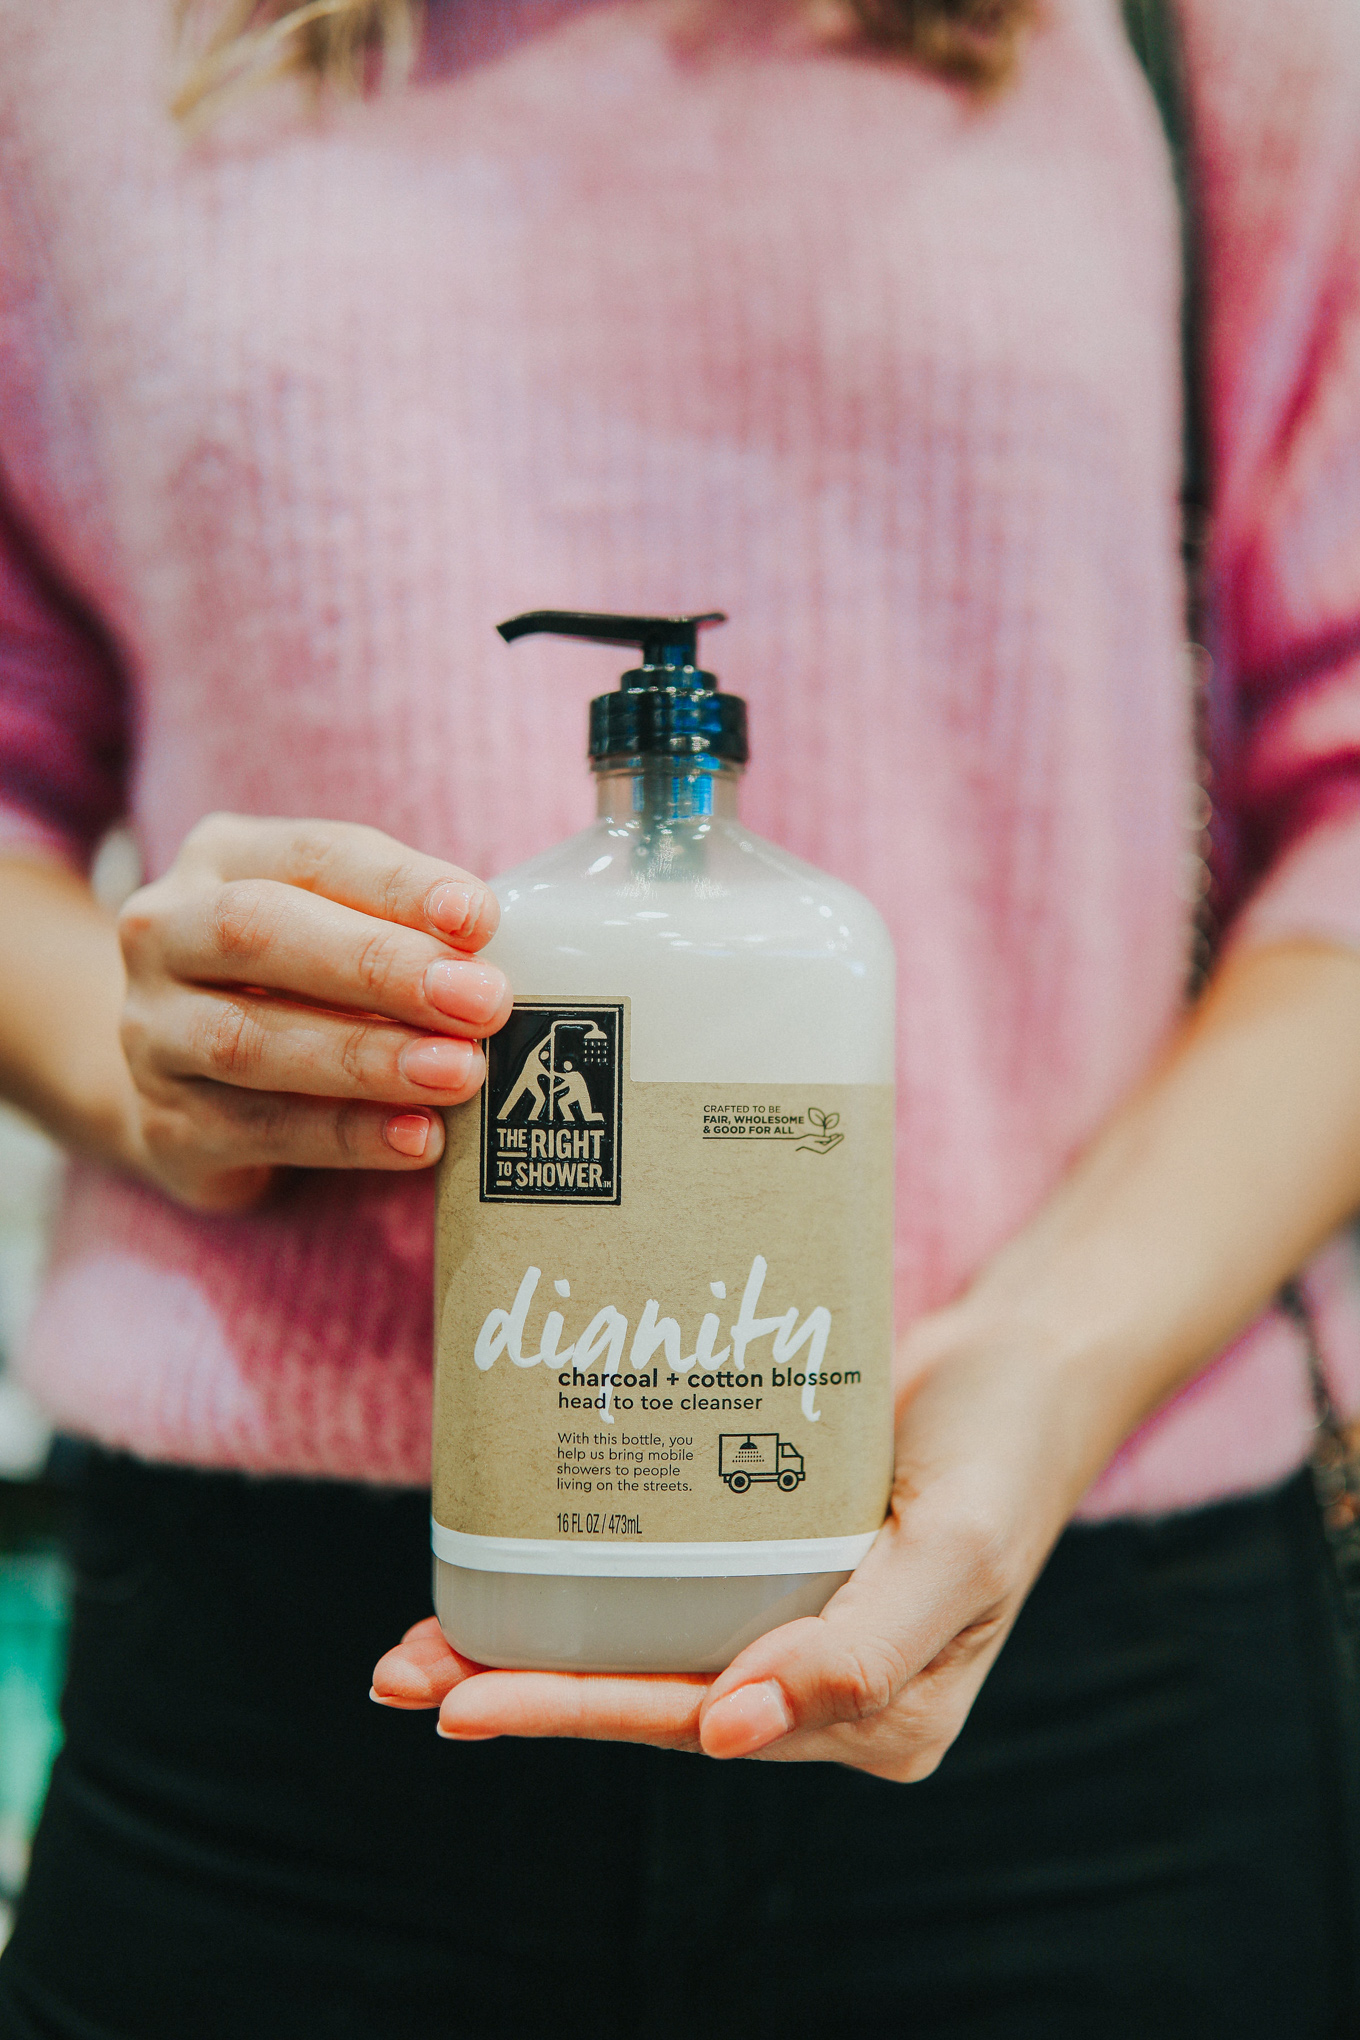 Buy this body wash & help provide free showers for the homeless